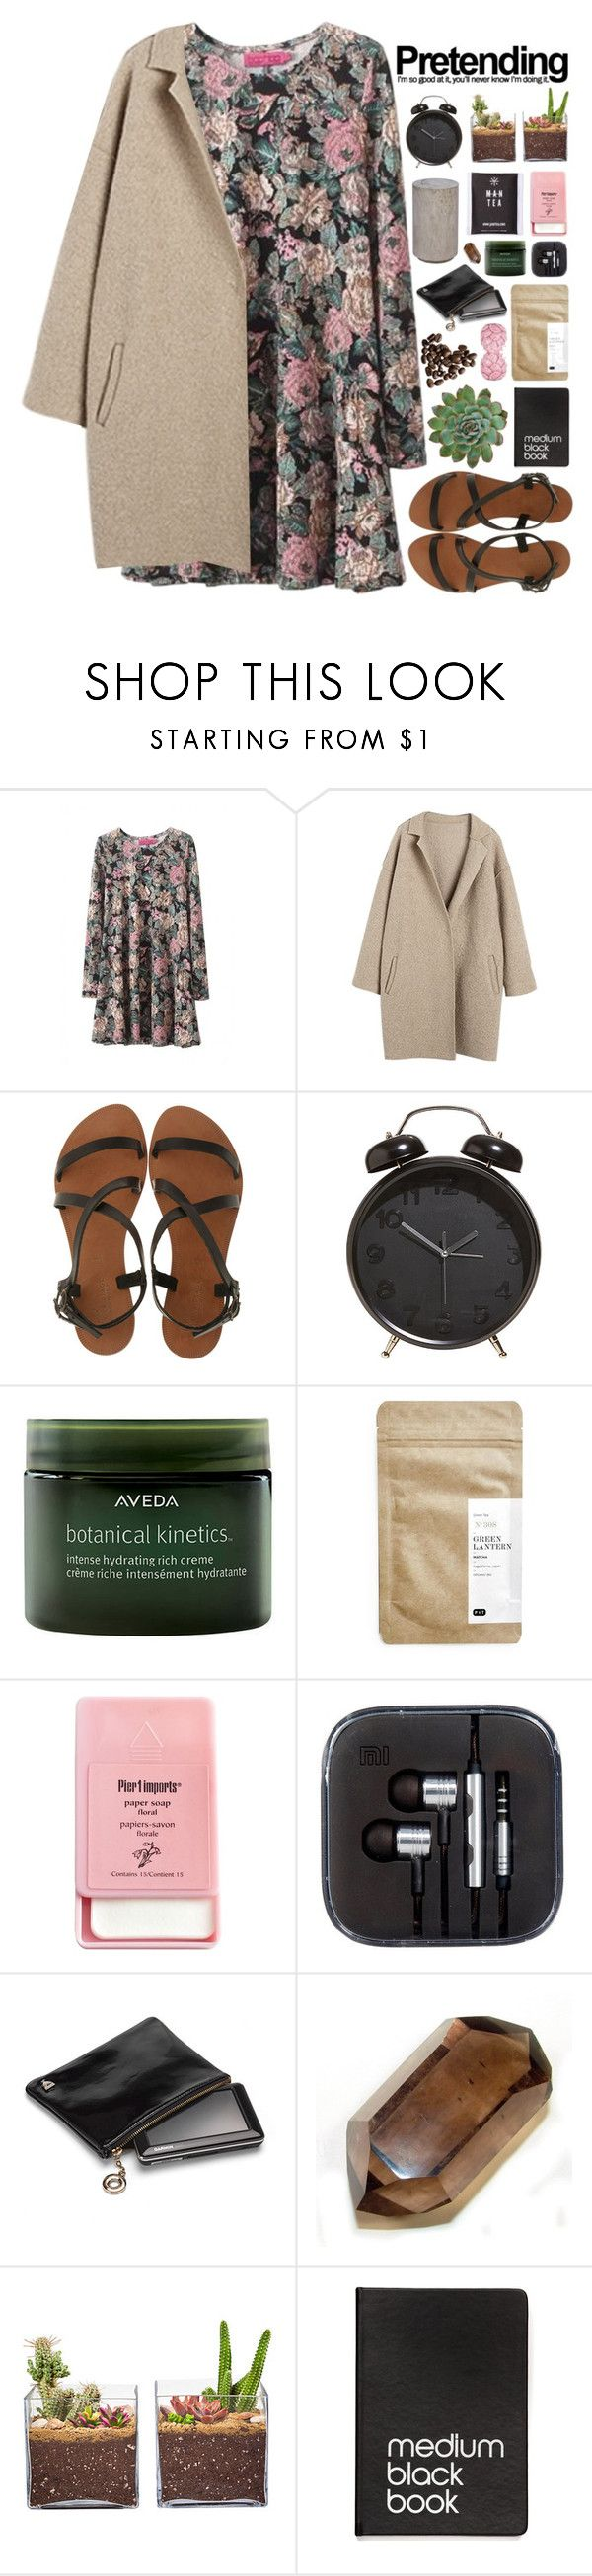 """Sweet Talker"" by vip-beauty ❤ liked on Polyvore featuring Joie A La Plage, Aveda, Paper & Tea, Pier 1 Imports, Aspinal of London, Shop Succulents, Dinks, Zara Home and living room"